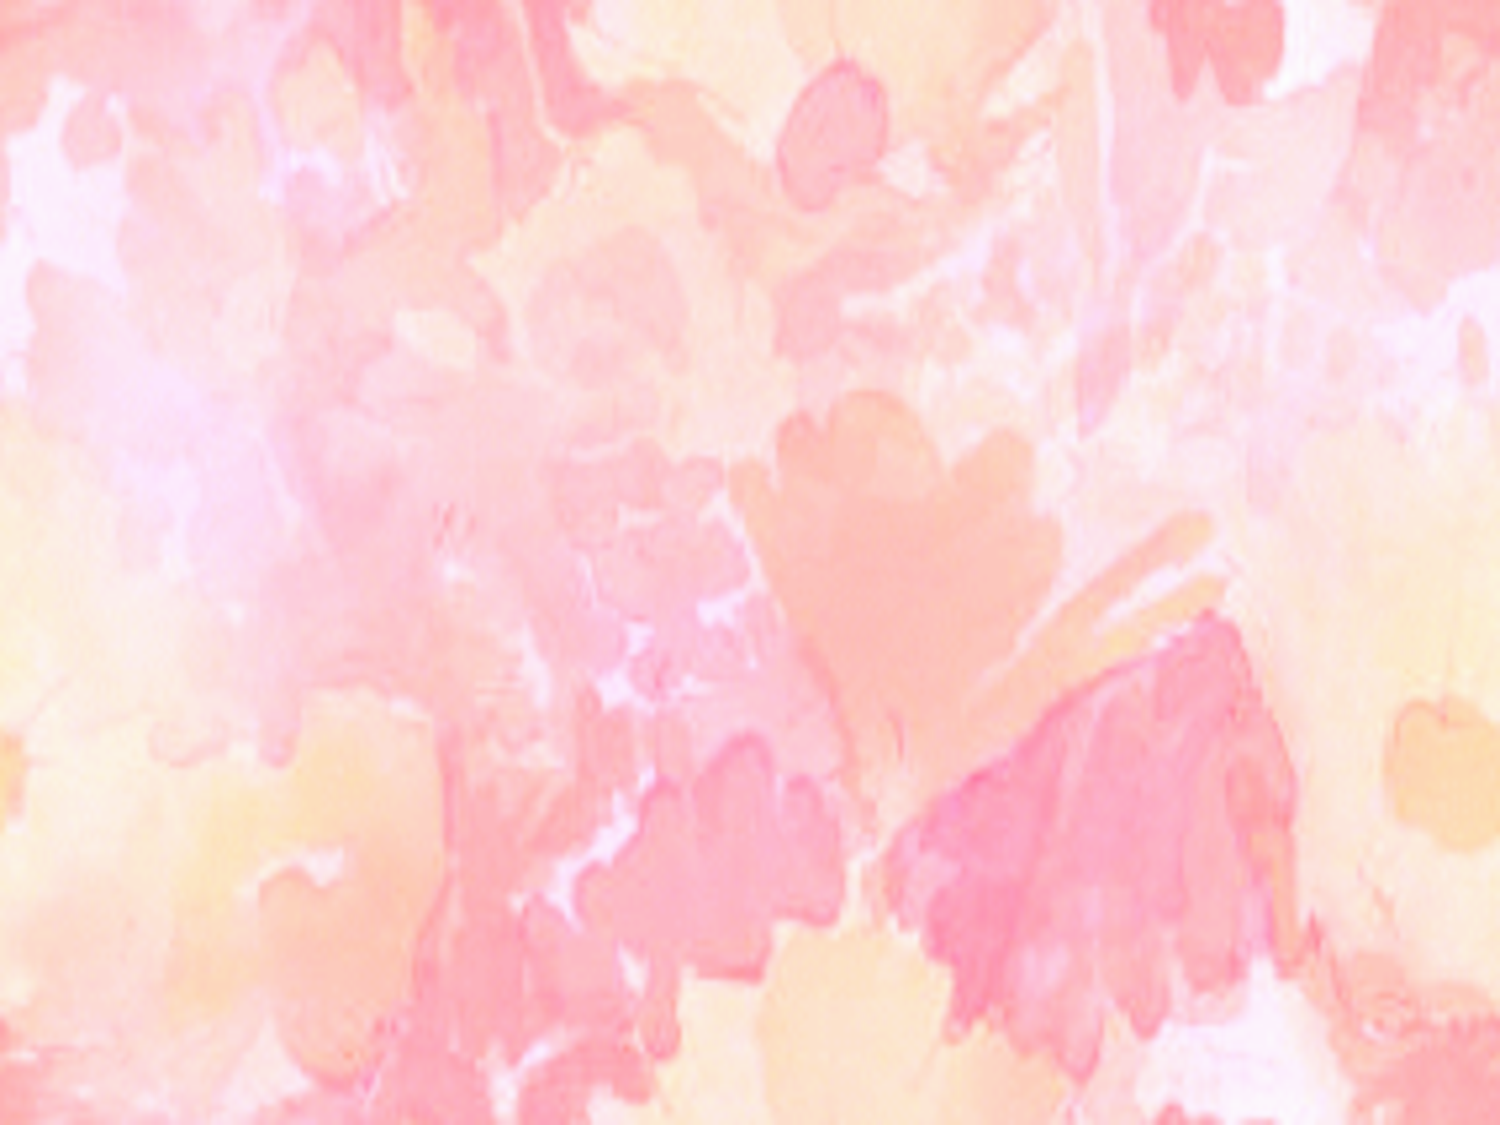 Background image google slides - Pastel Floral Wallpaper Wide Otg